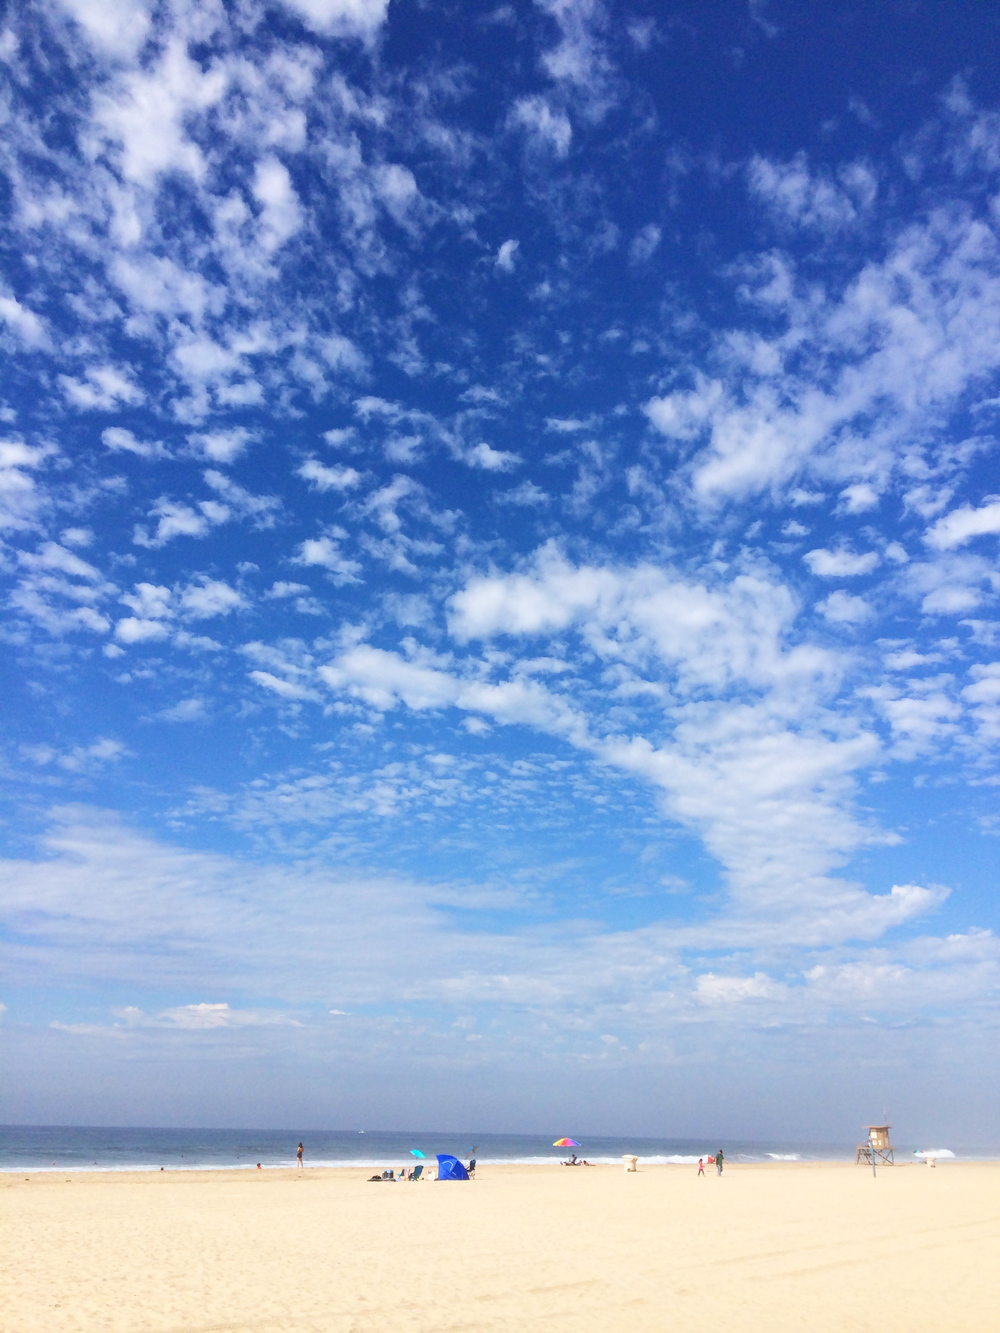 Sunday beach sky.